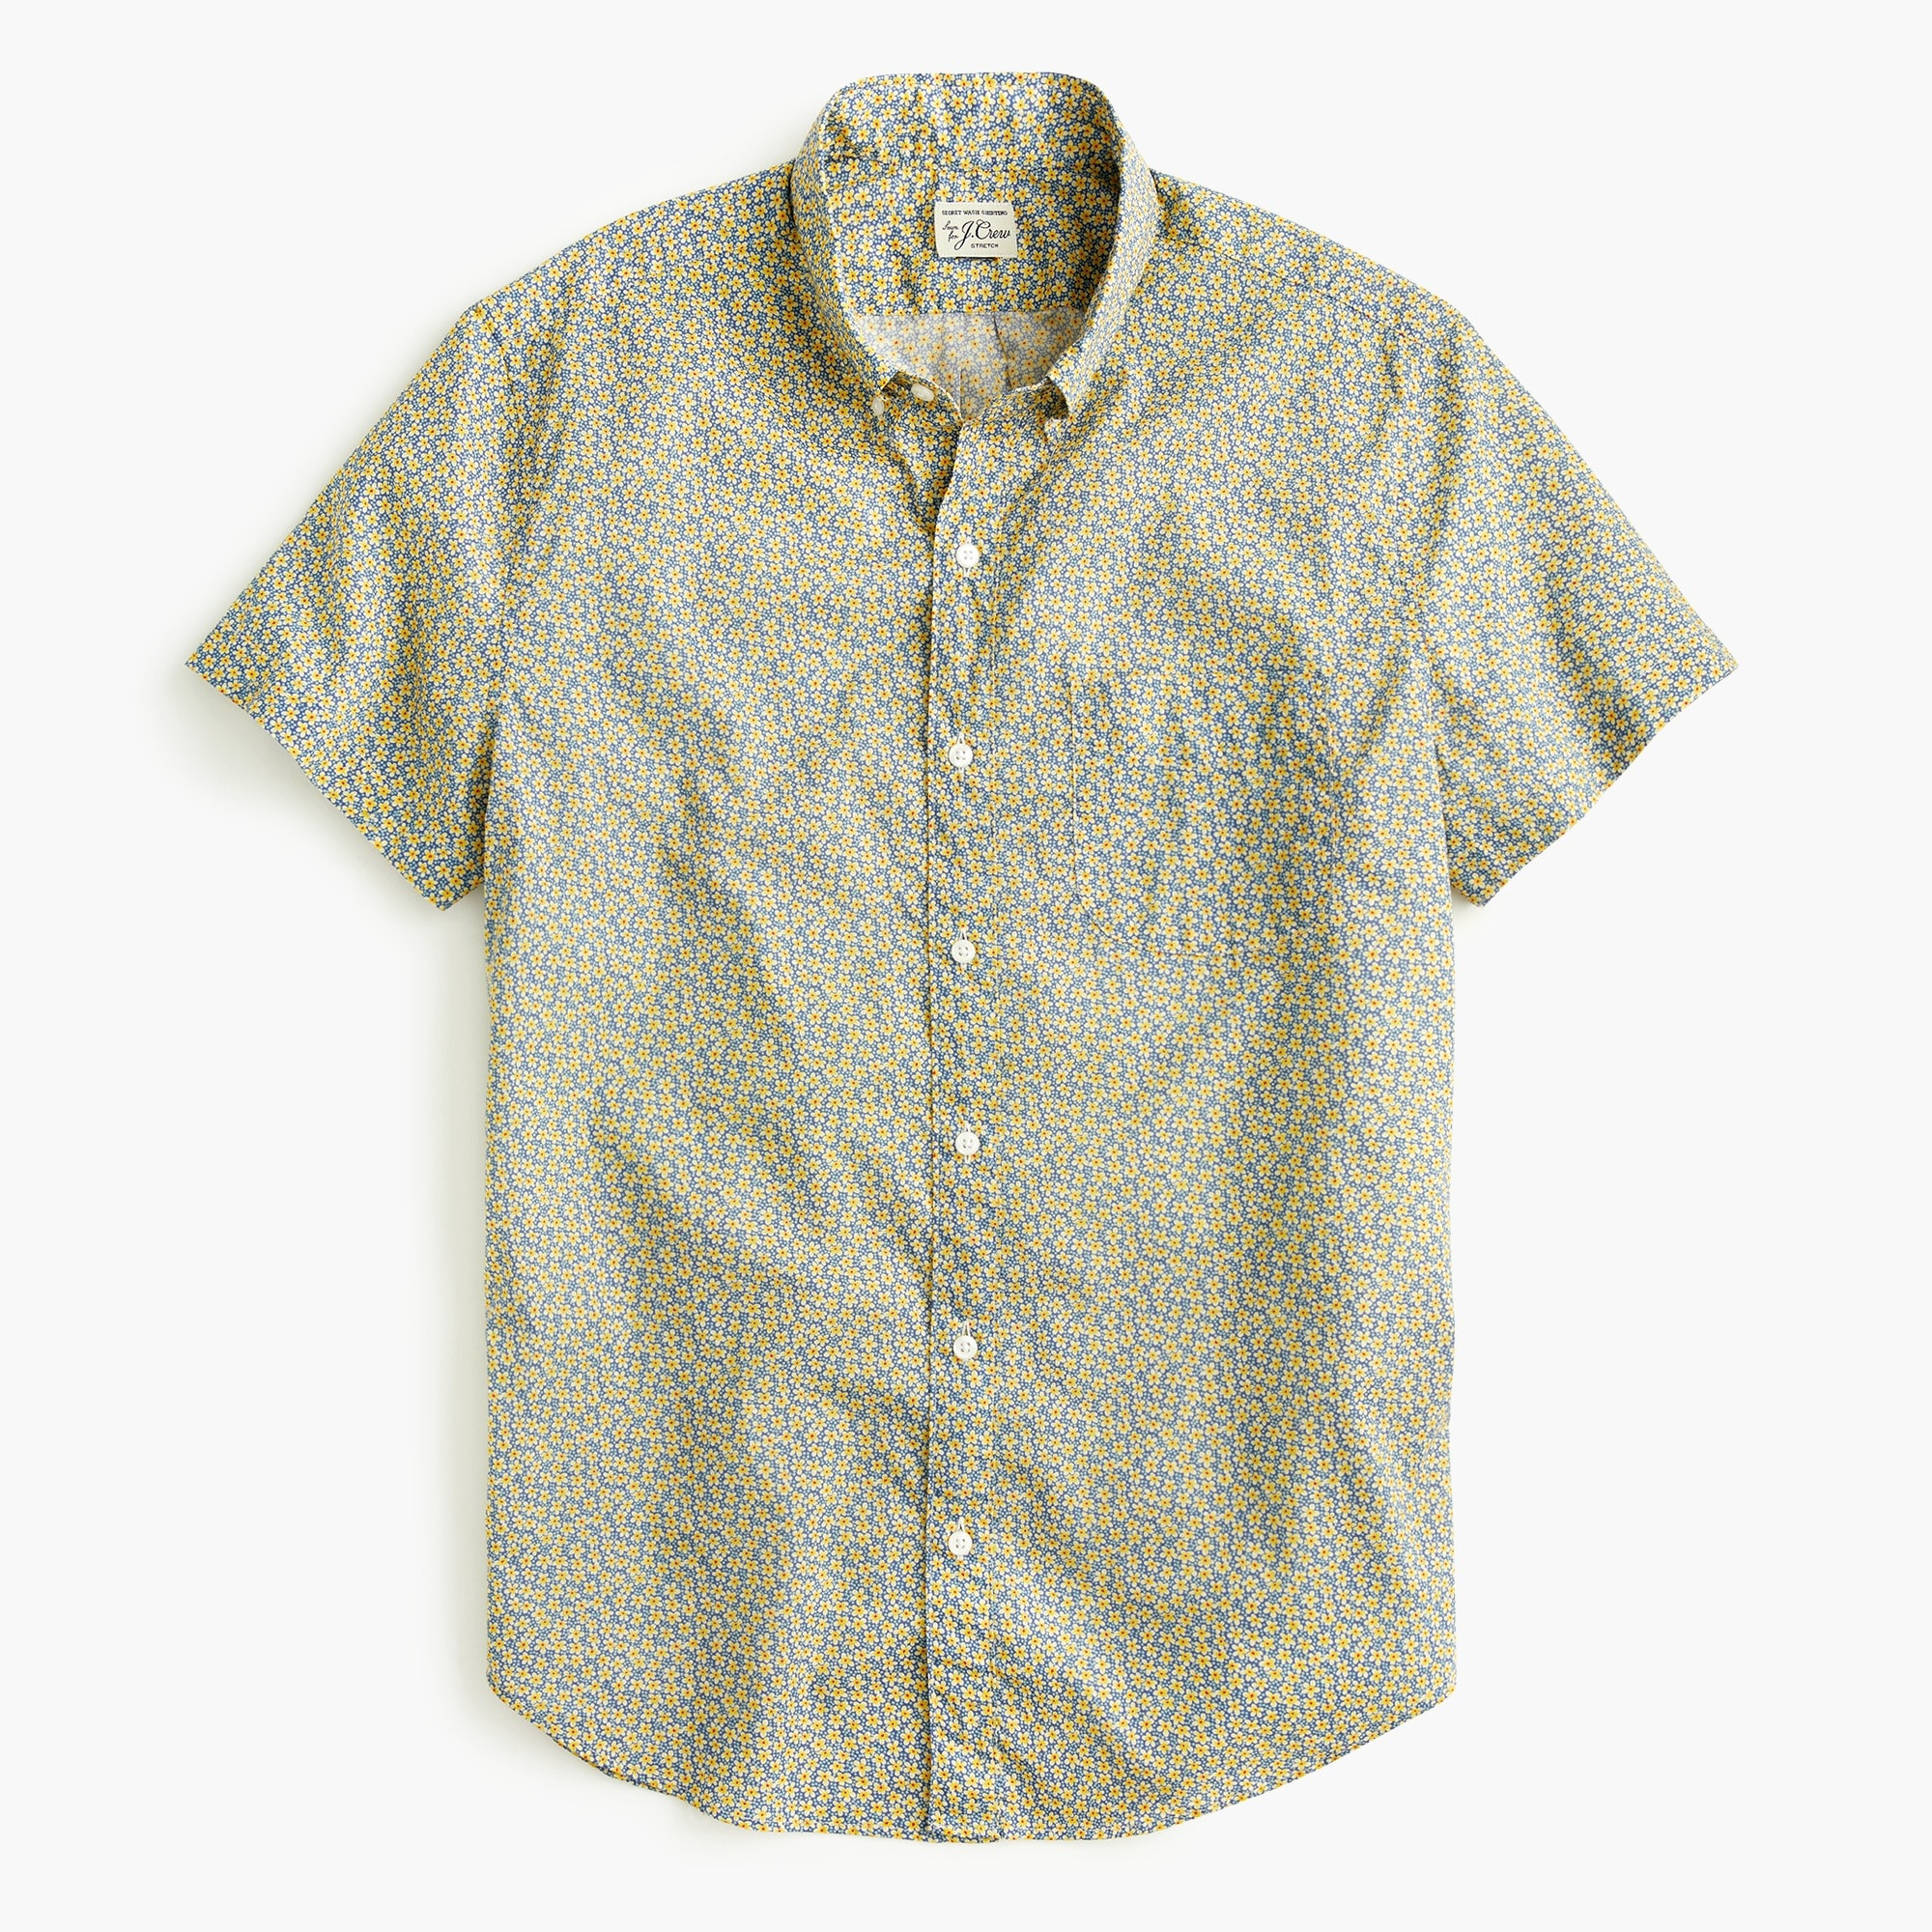 mens Short-sleeve shirt in Liberty® speckle flower print